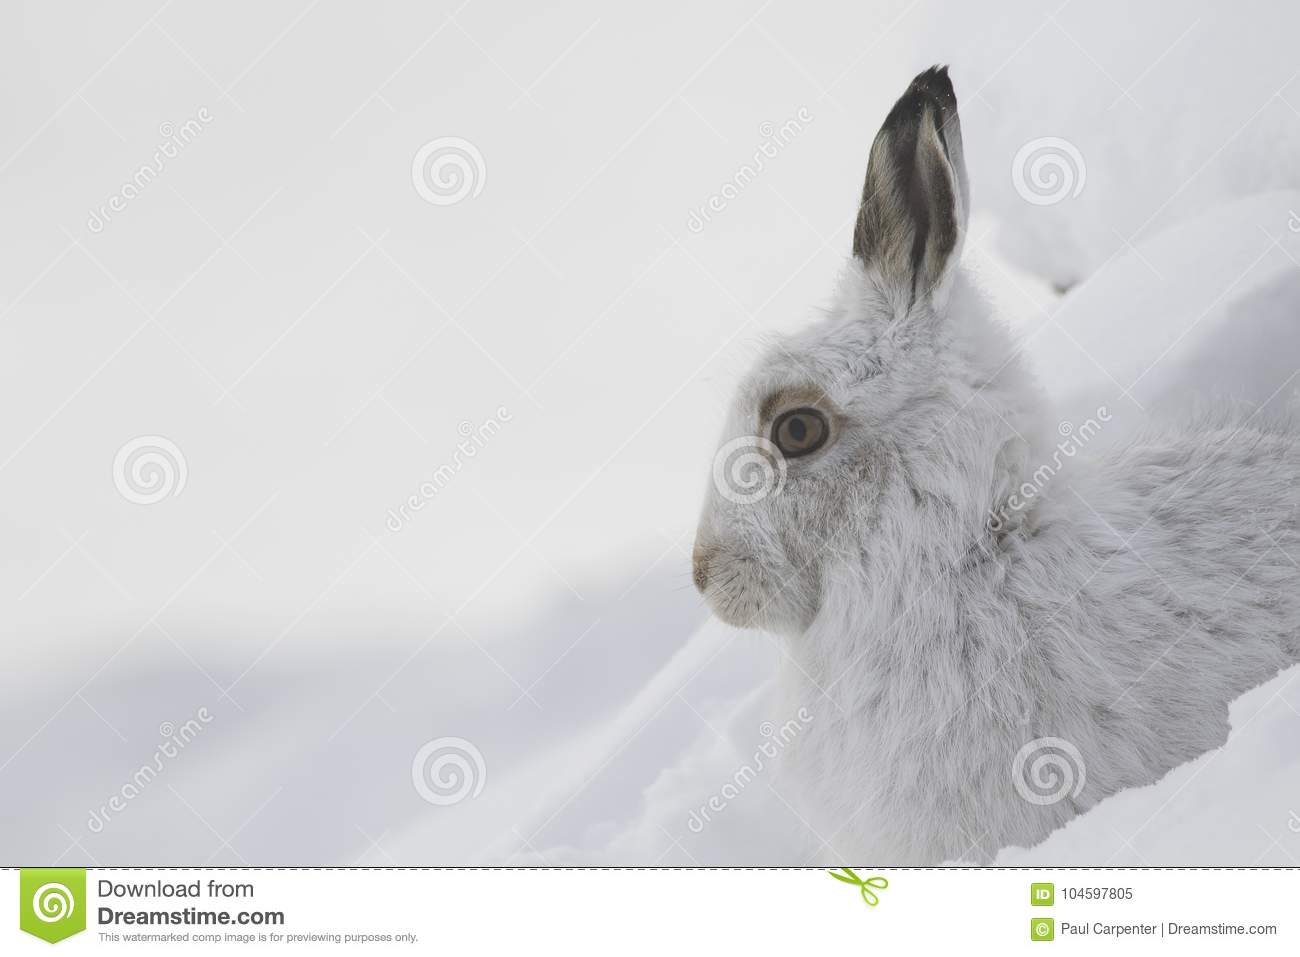 Mountain hare, Lepus timidus, close up portrait while sitting, laying on snow during winter in winter/summer coat during autumn/wi